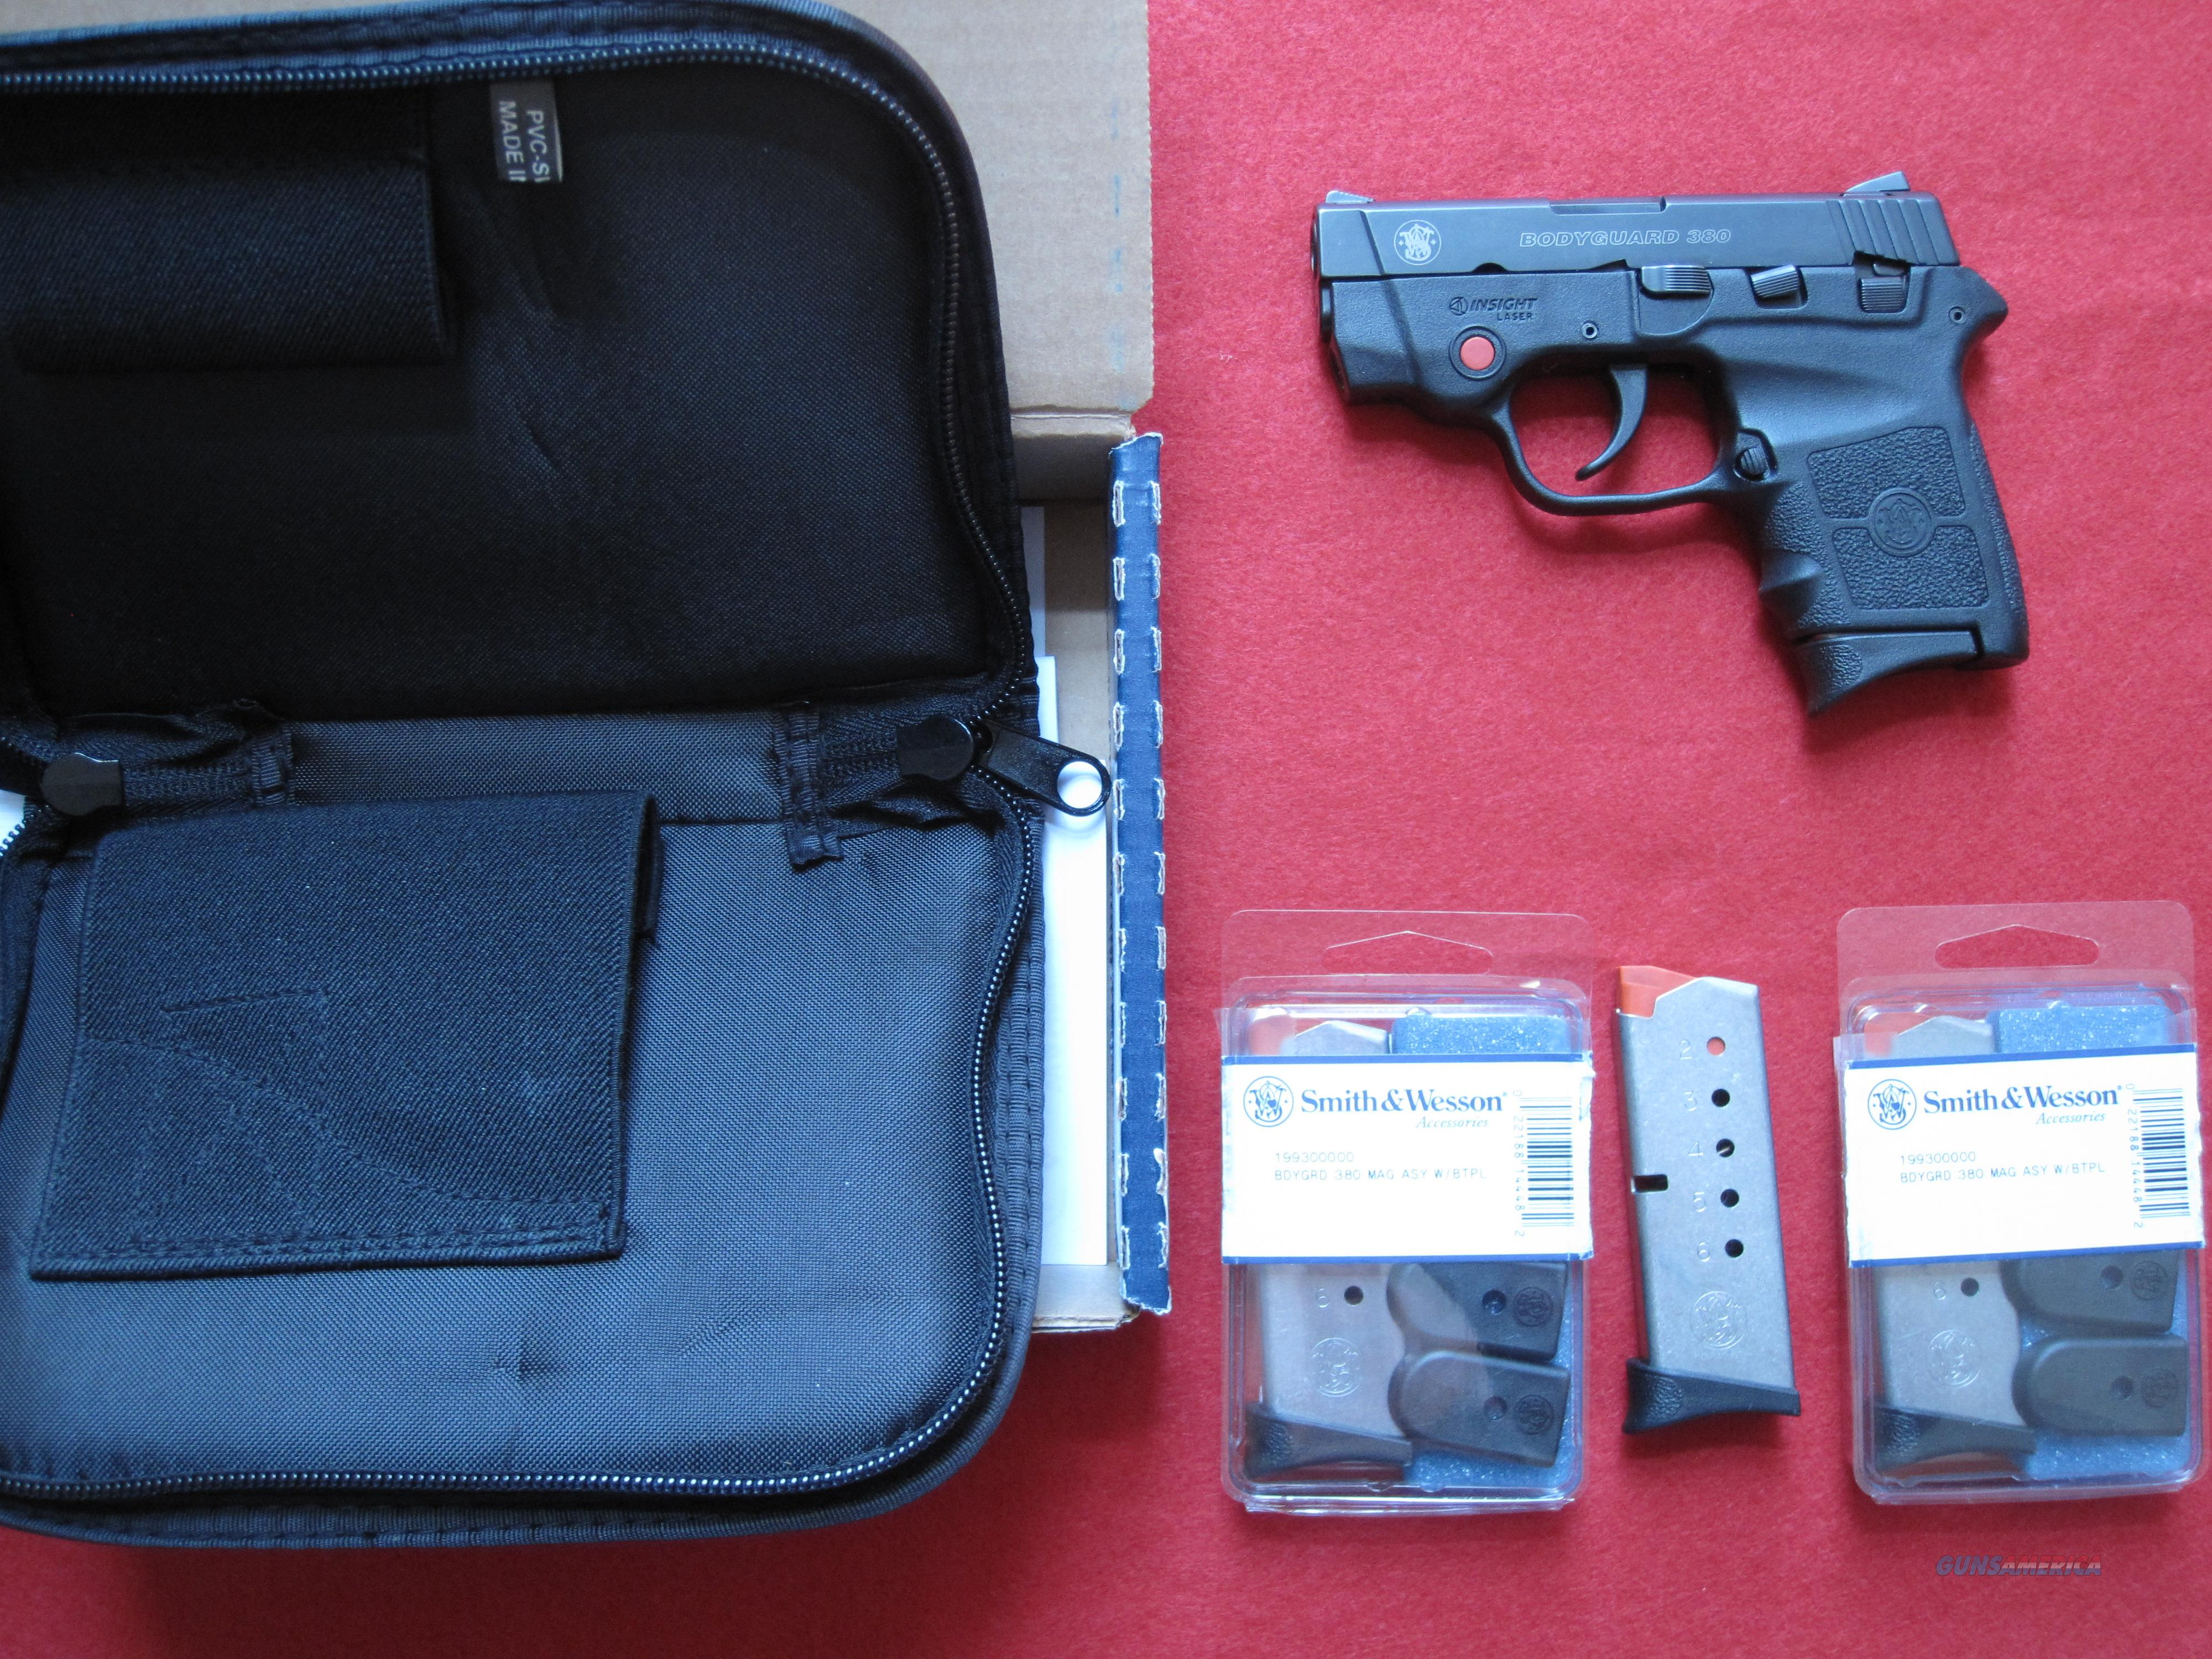 S&W M&P BODYGUARD .380 W/LASER AND SAFETY  Guns > Pistols > Smith & Wesson Pistols - Autos > Polymer Frame